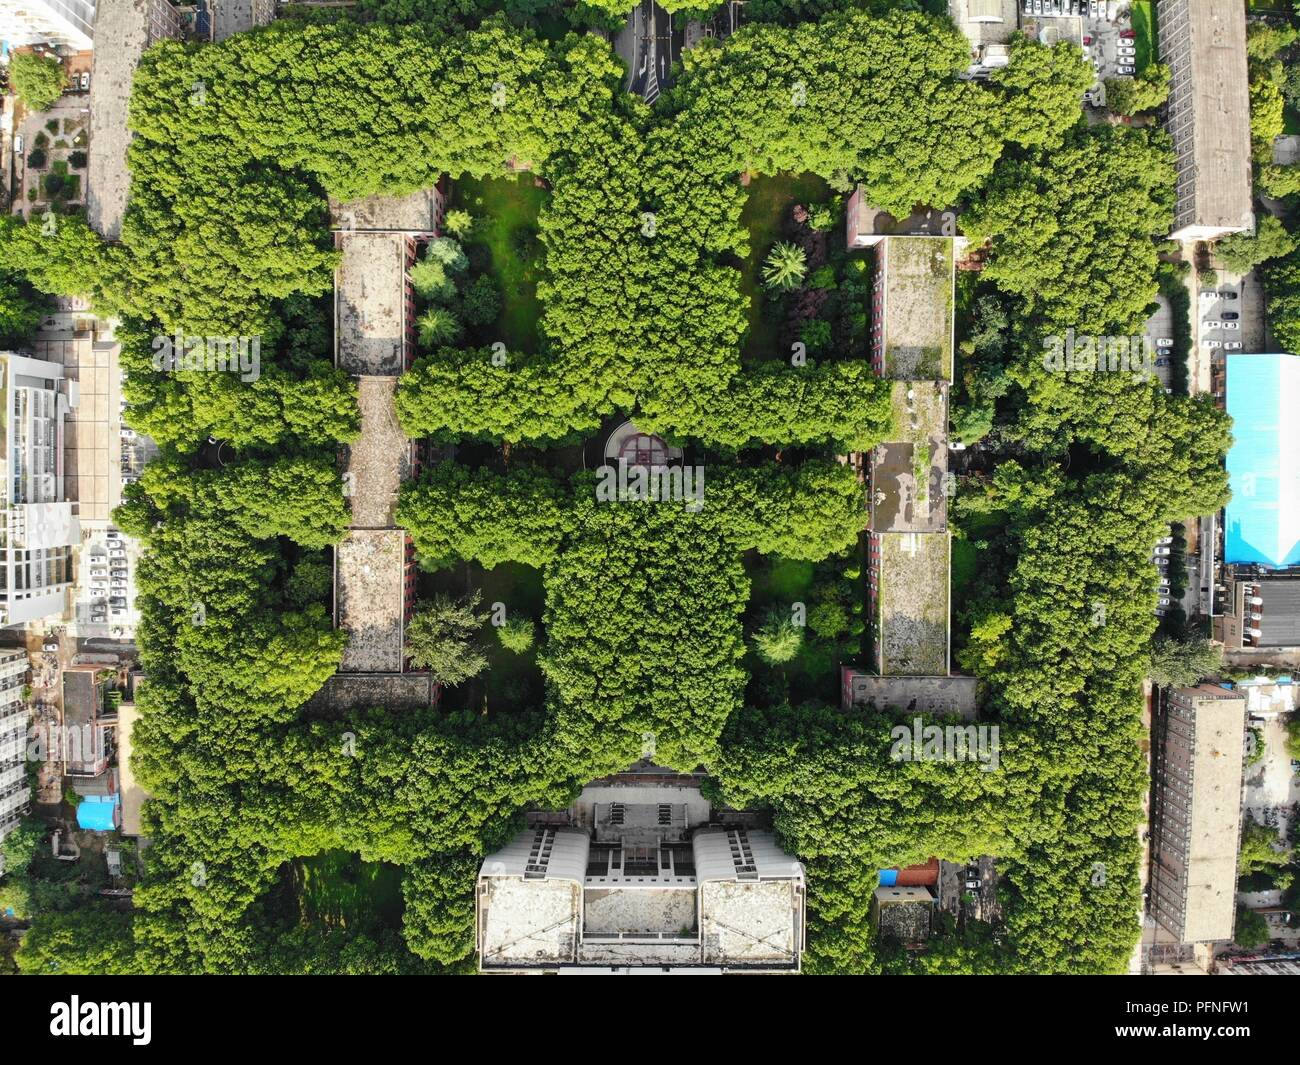 Zhengzhou China 22nd Aug 2018 The Home Wiring Green Building Central Labyrinth Of Trees Can Be Seen At University In Chinas Henan Province Credit Sipa Asia Zuma Wire Alamy Live